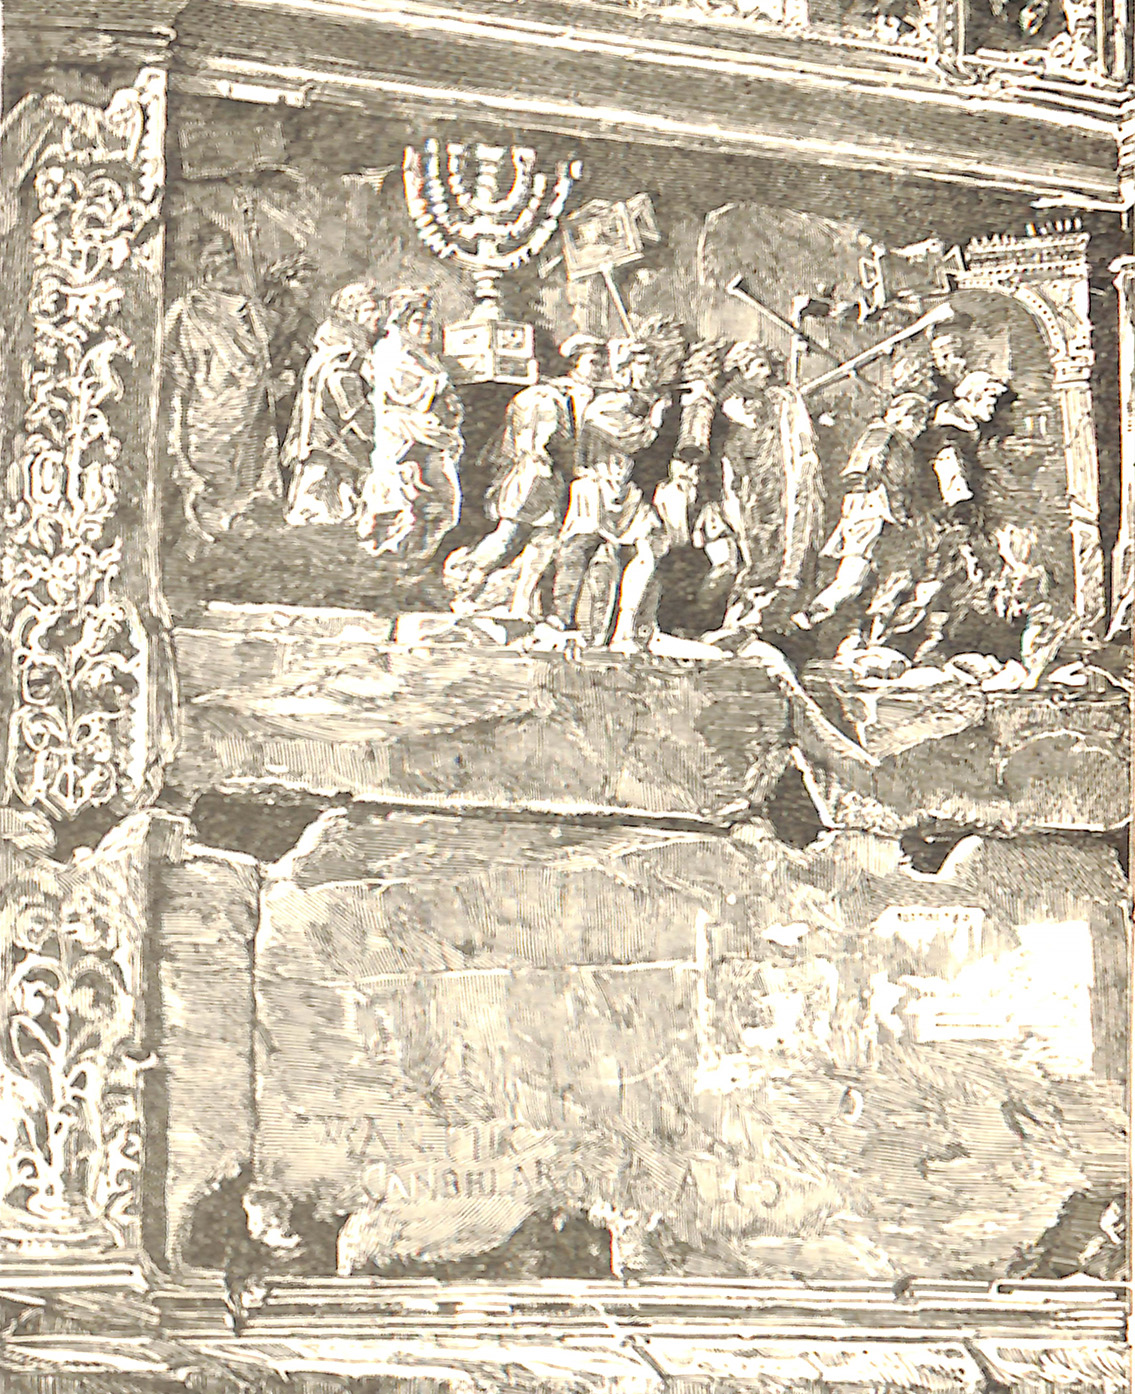 Frieze From The Arch of Titus